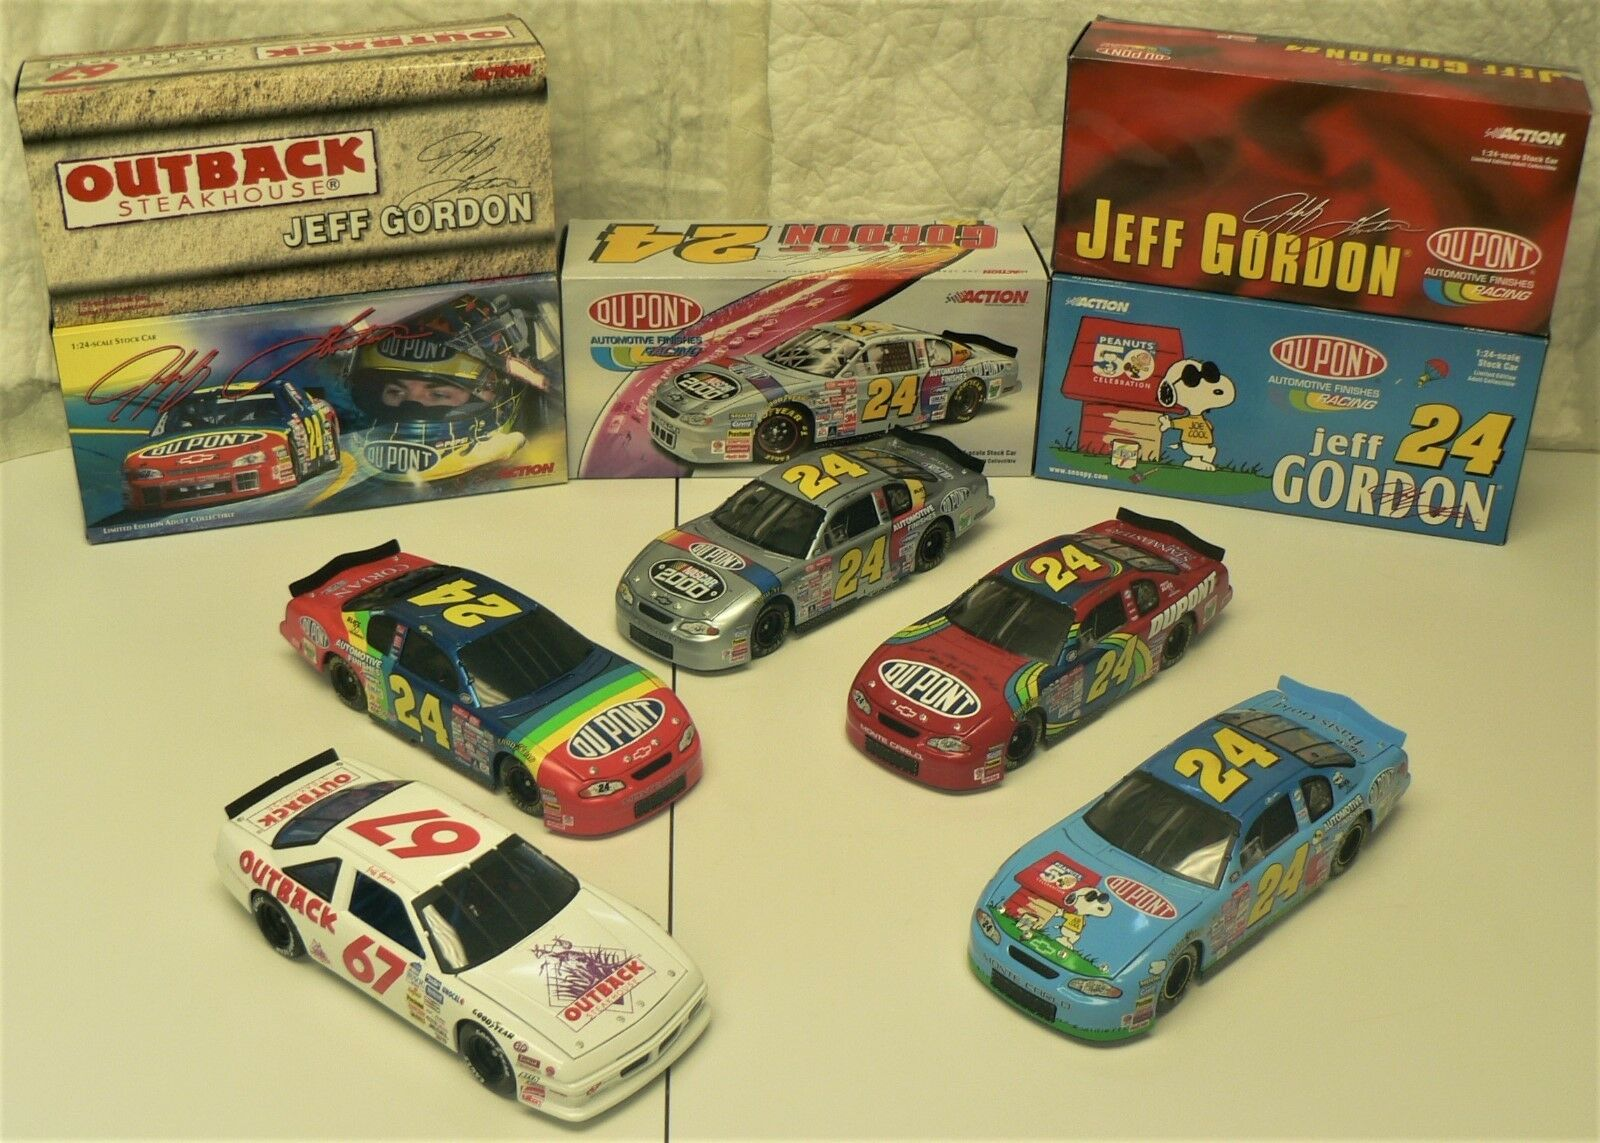 NASCAR - JEFF GORDON - Lot of 5 (2000) Limited Collectable Cars by ACTION Racing